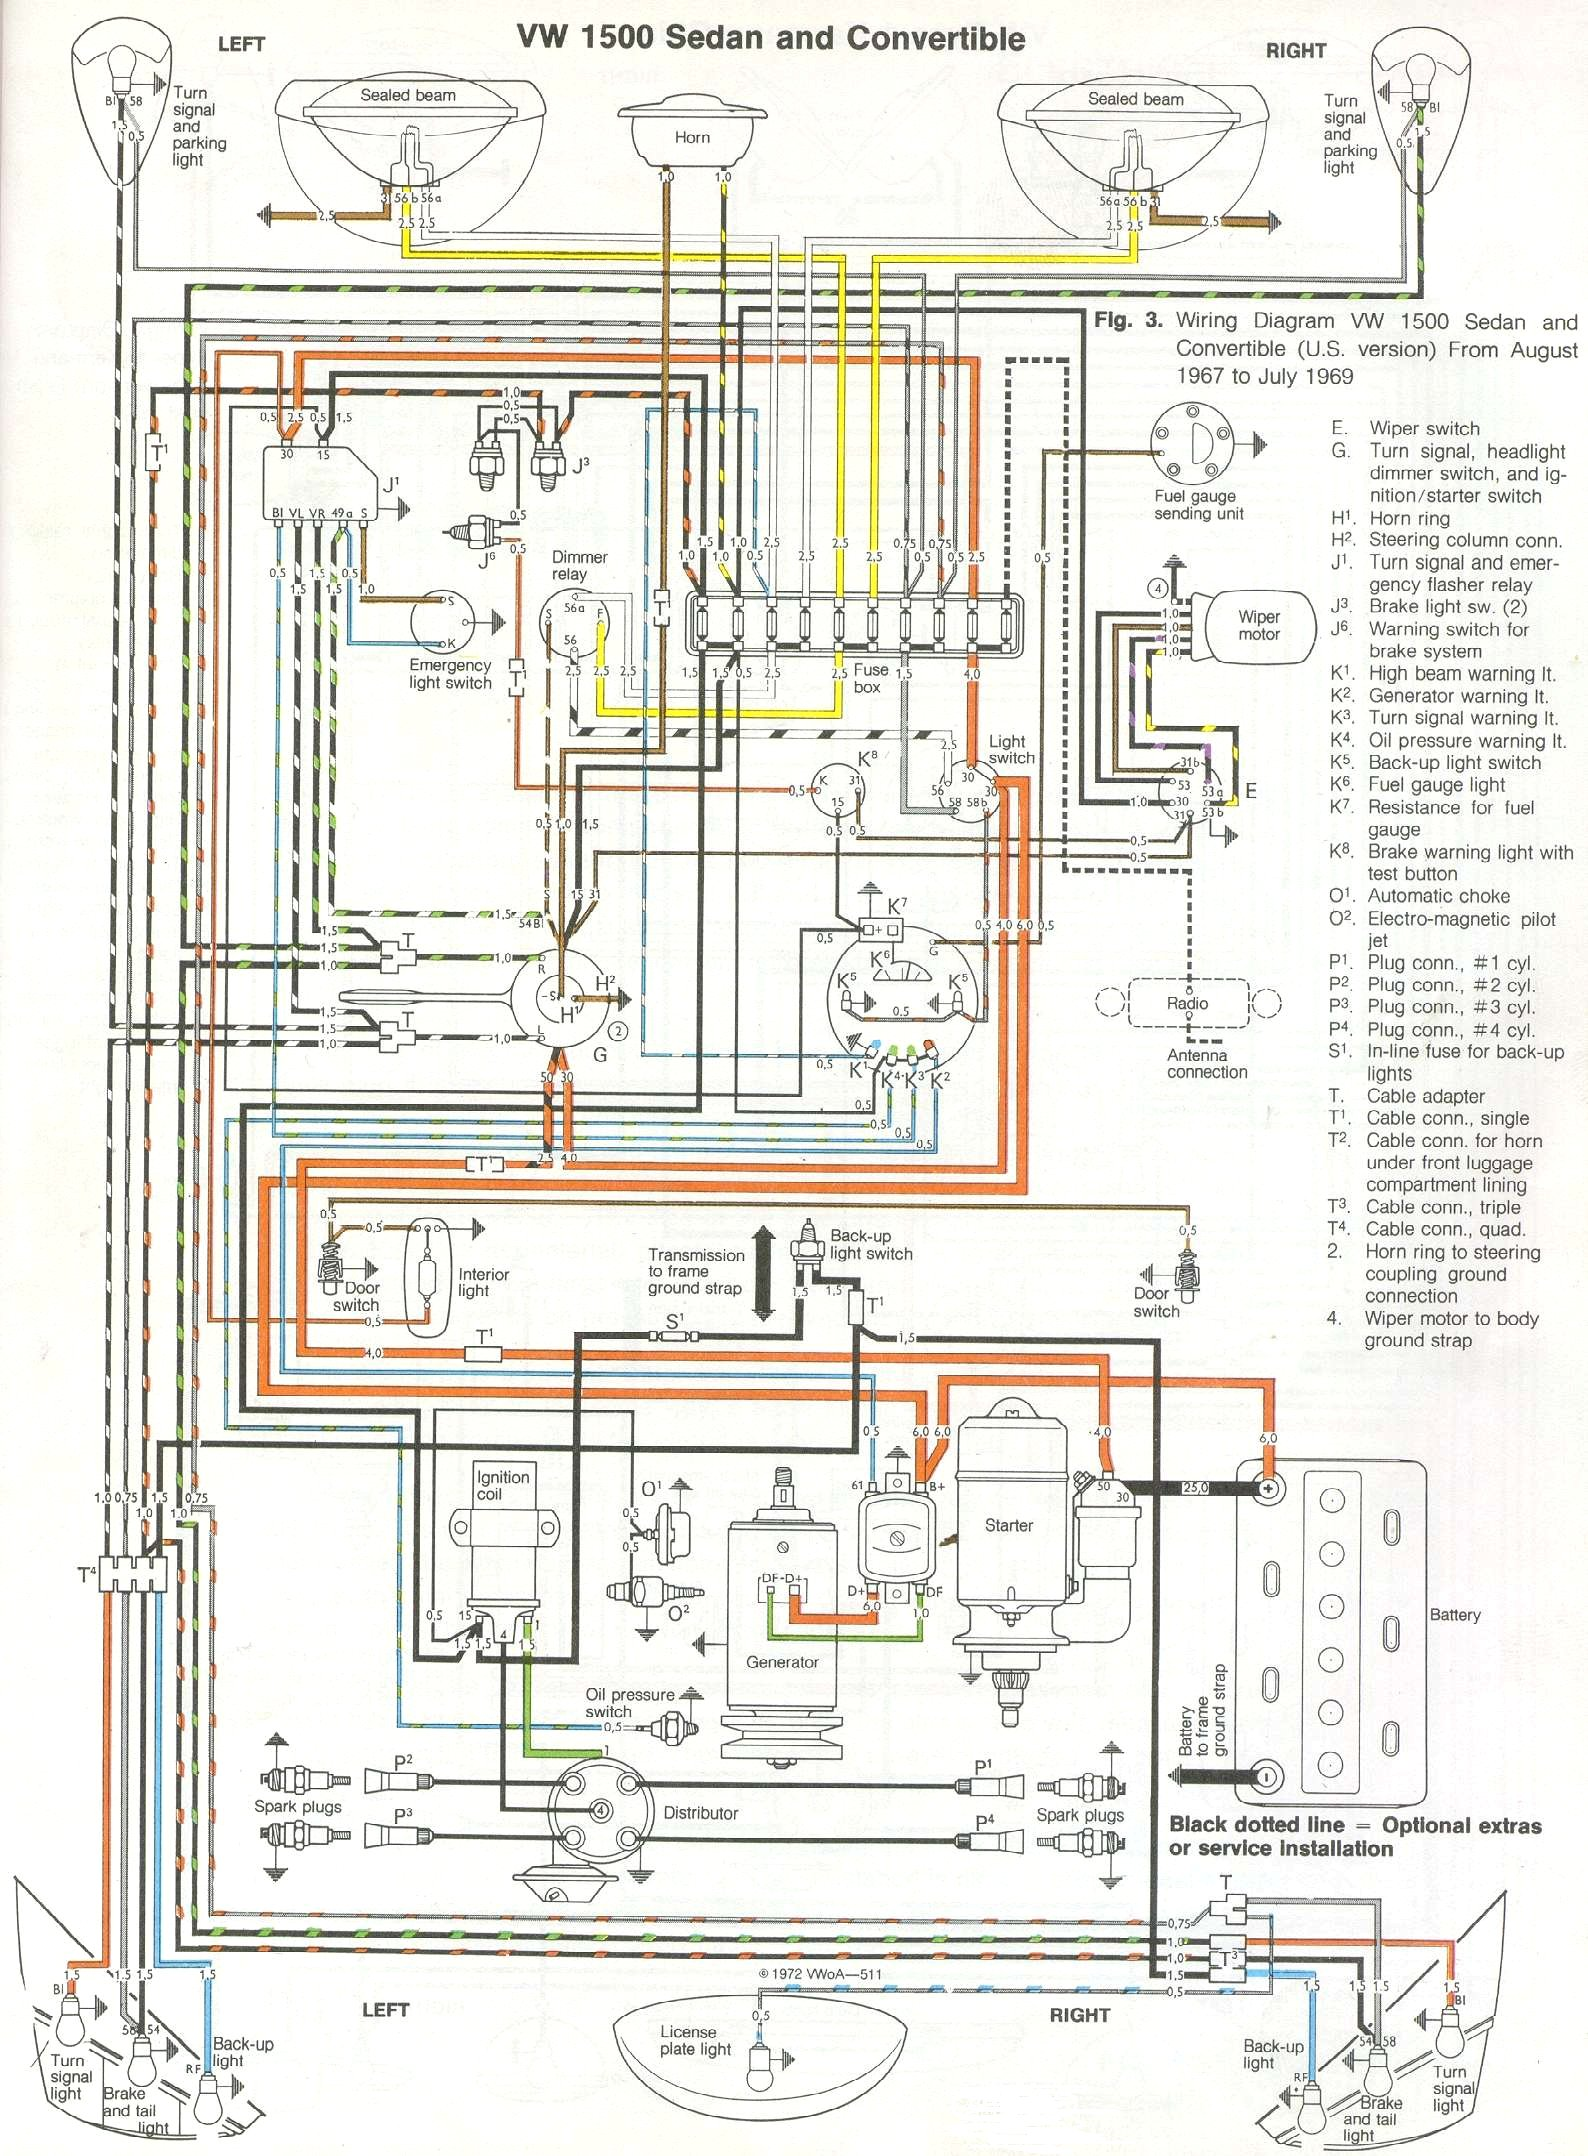 1969 71 beetle wiring diagram thegoldenbug com 1969 VW Beetle Turn Signal Wiring vw bug wiring schematic